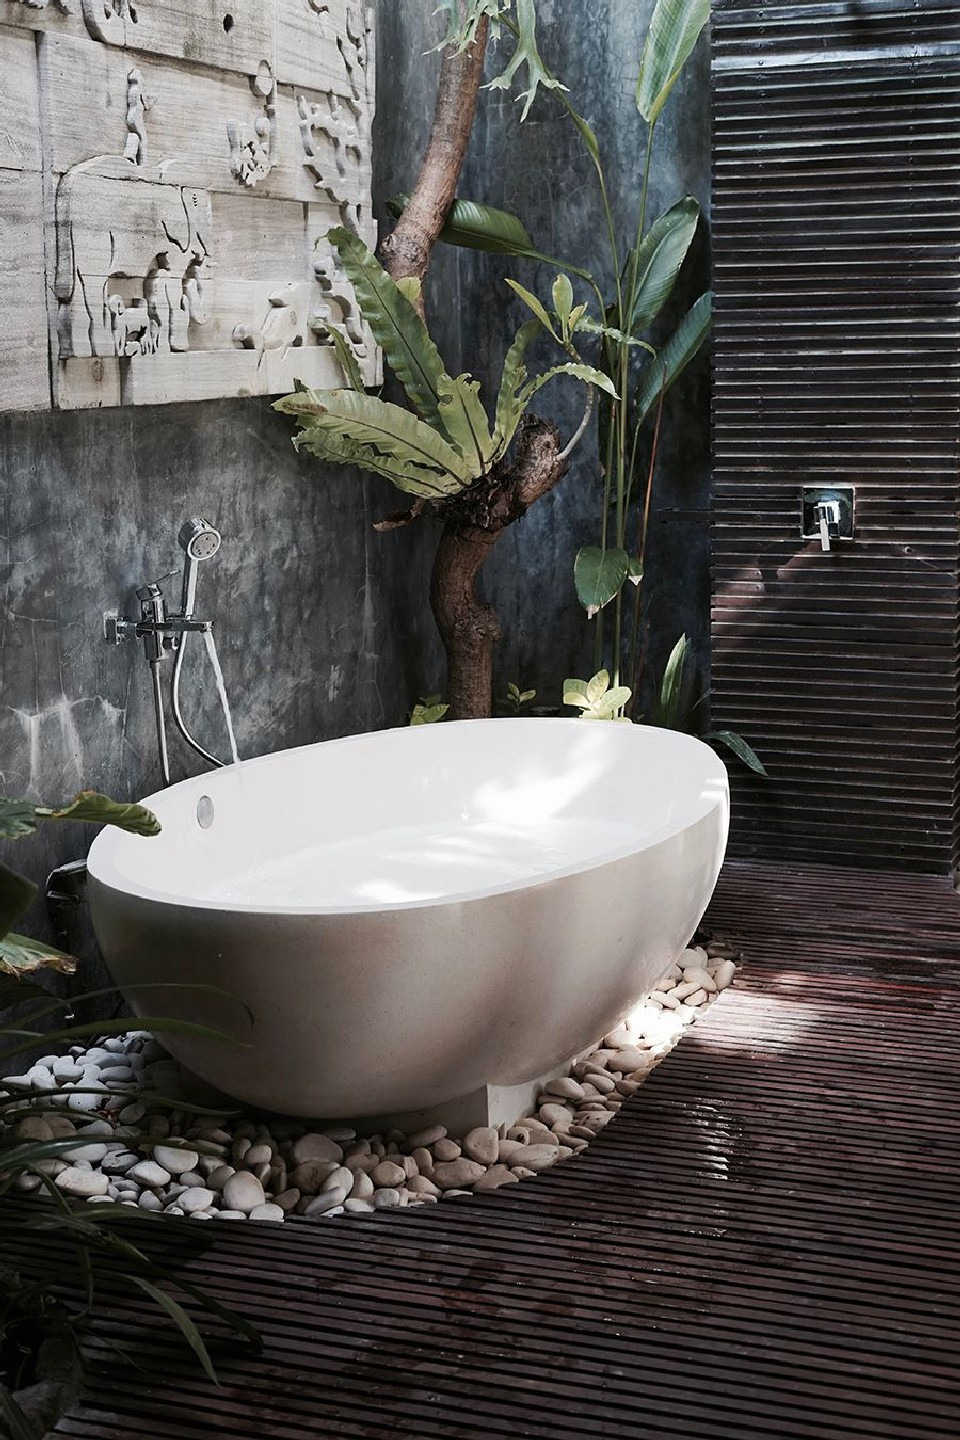 Incredible Jungle Bathroom Decor Ideas to Refresh Washroom 11